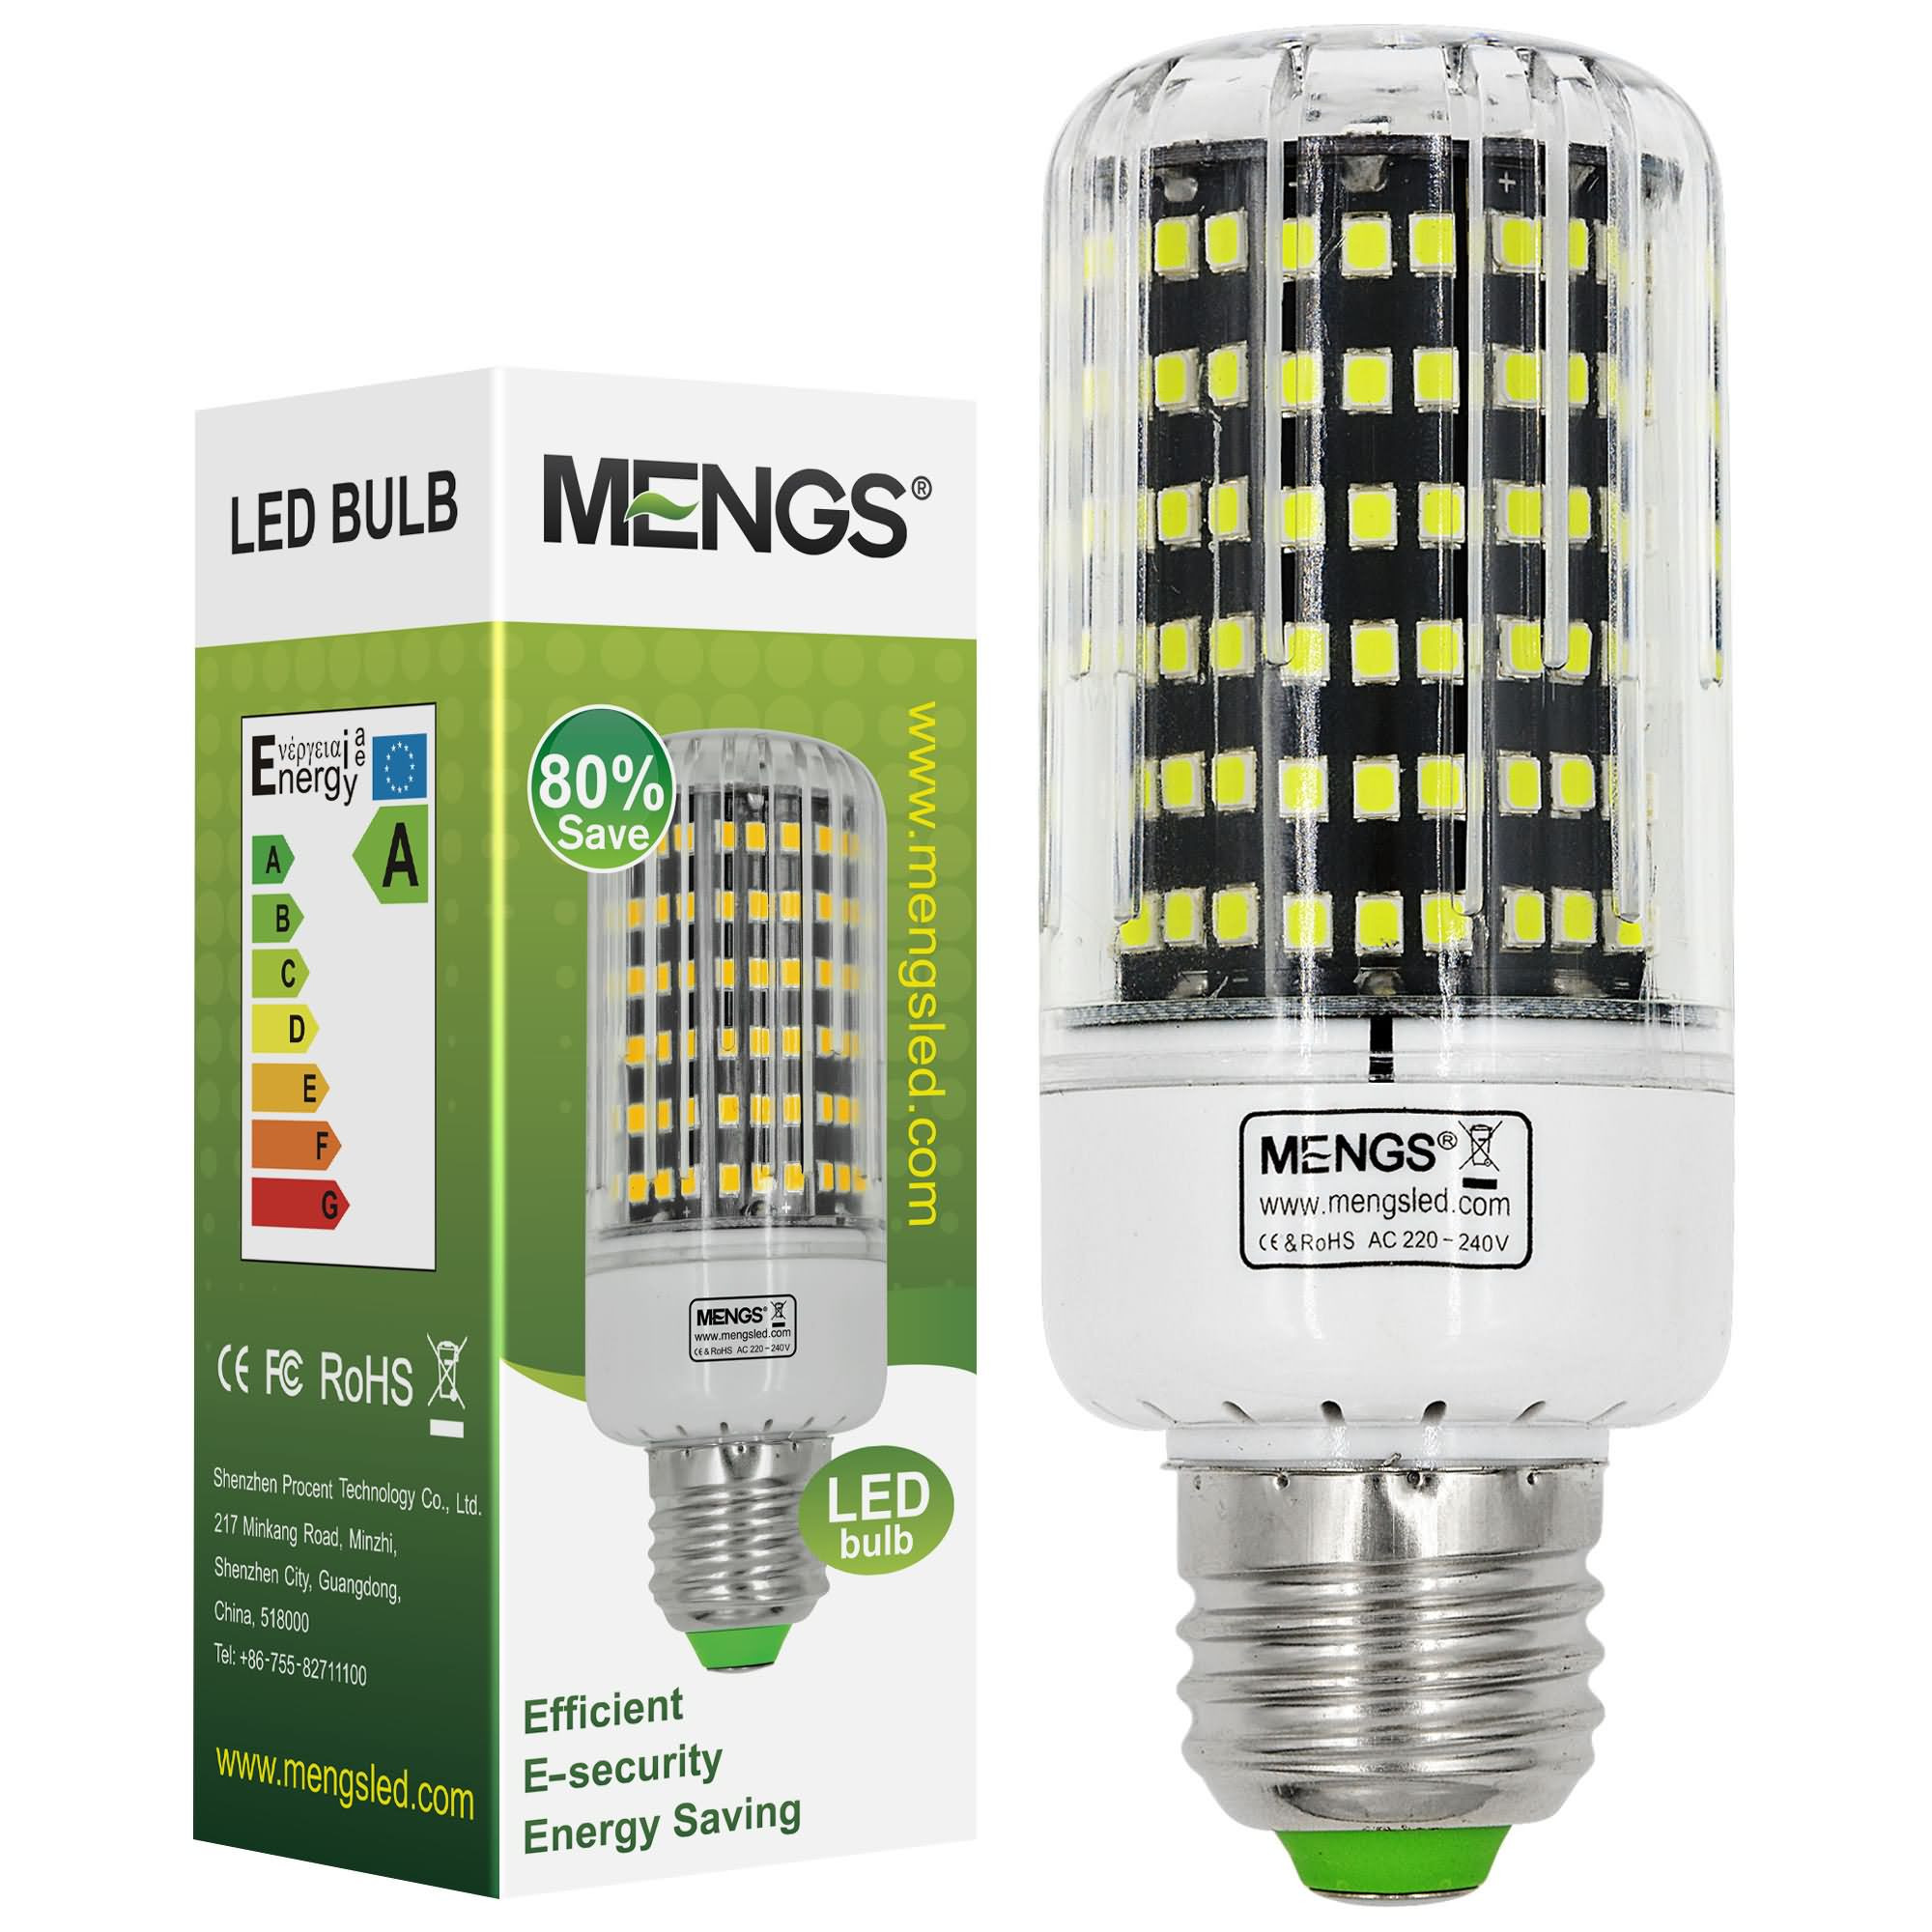 MENGS® E27 15W LED Corn Light 162x 2835 SMD LED Bulb Lamp With Aluminum Plate In Cool White Energy-Saving Light